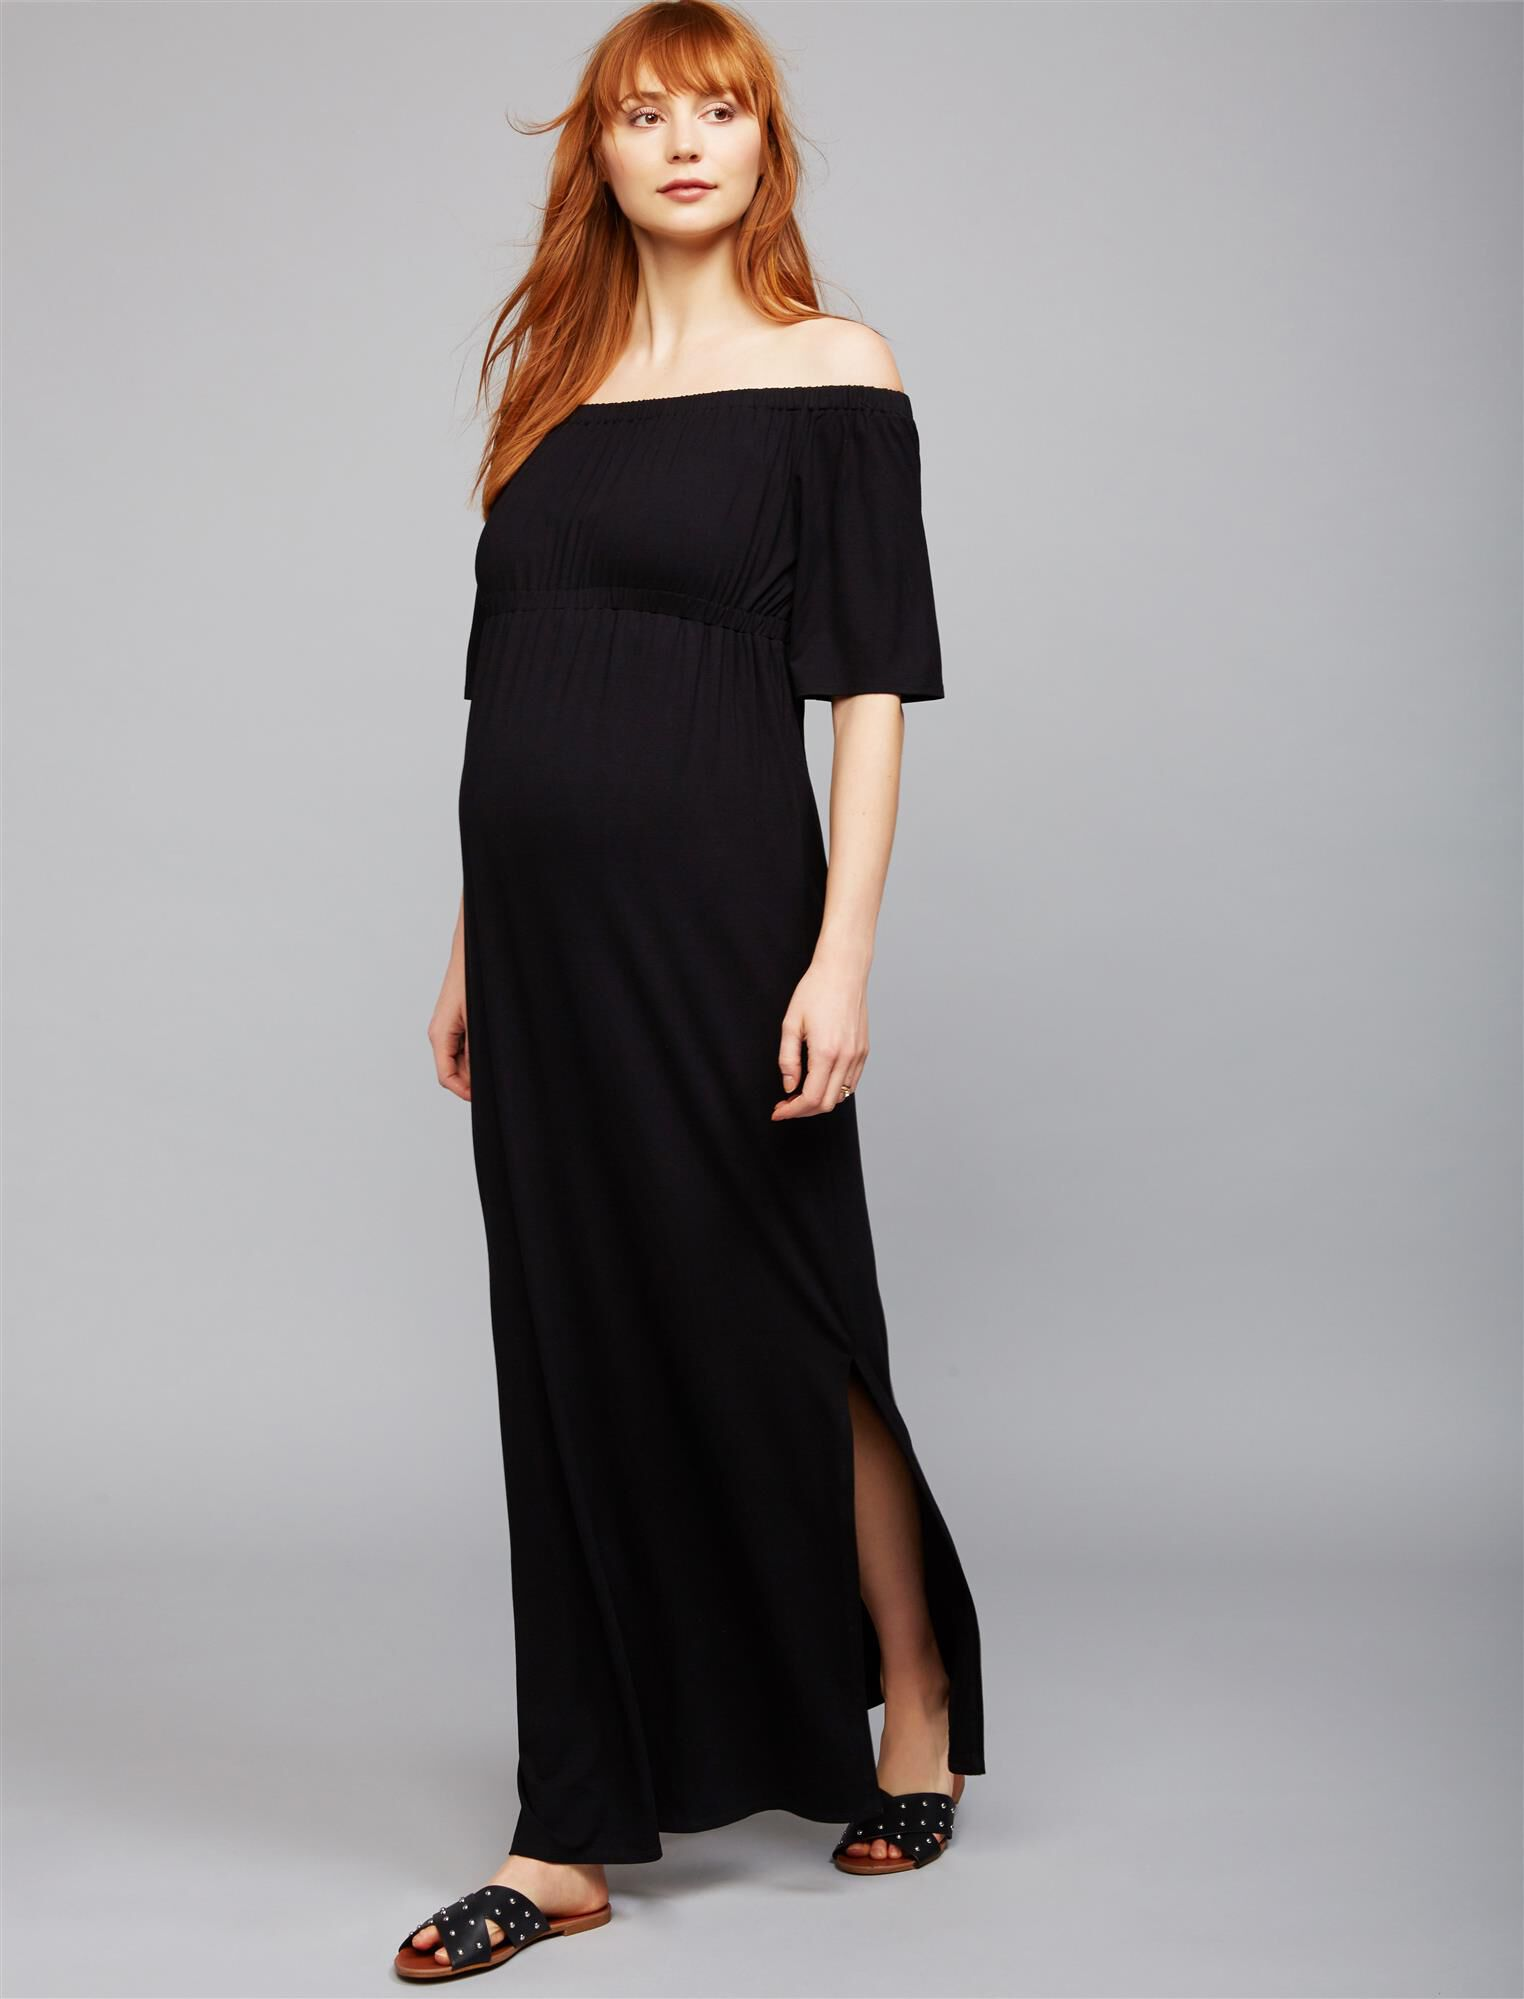 Isabella Oliver Strapless Maternity Maxi Dress